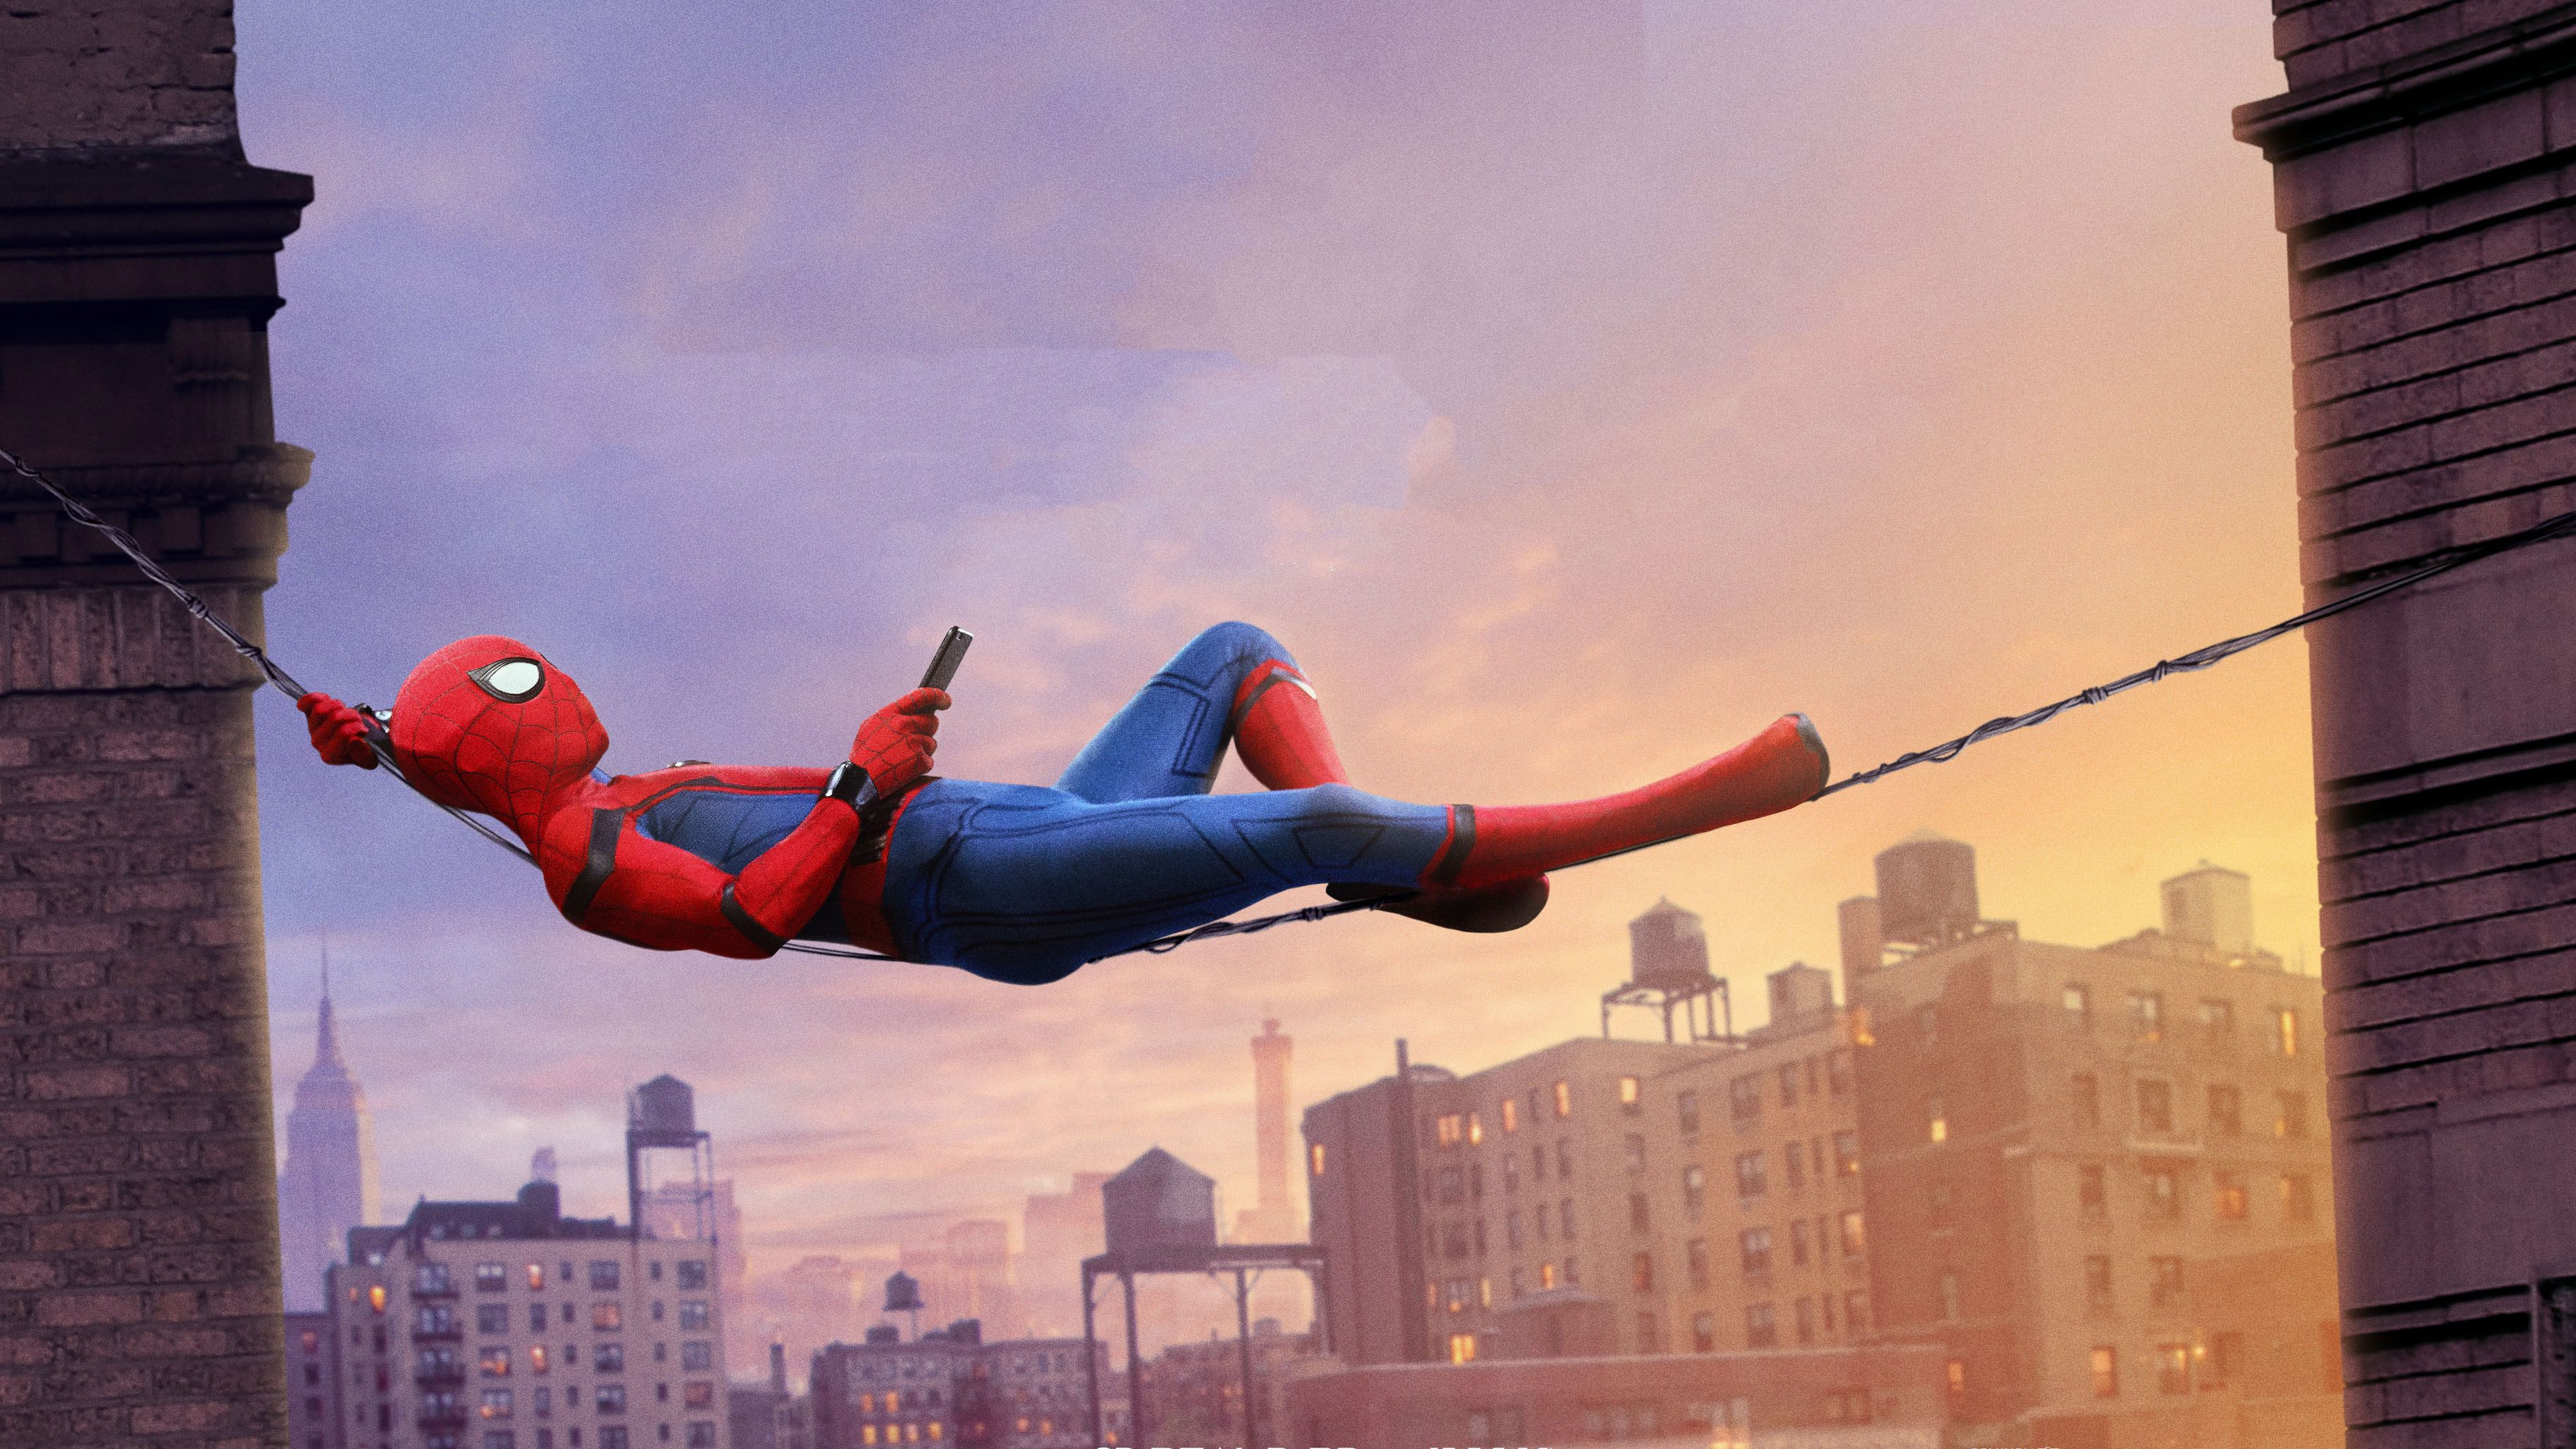 Movie Spider Man Homecoming Spider Man Hd Wallpaper 3657x2057 Superhero Wallpaper Marvel Wallpaper Hd Spiderman Artwork